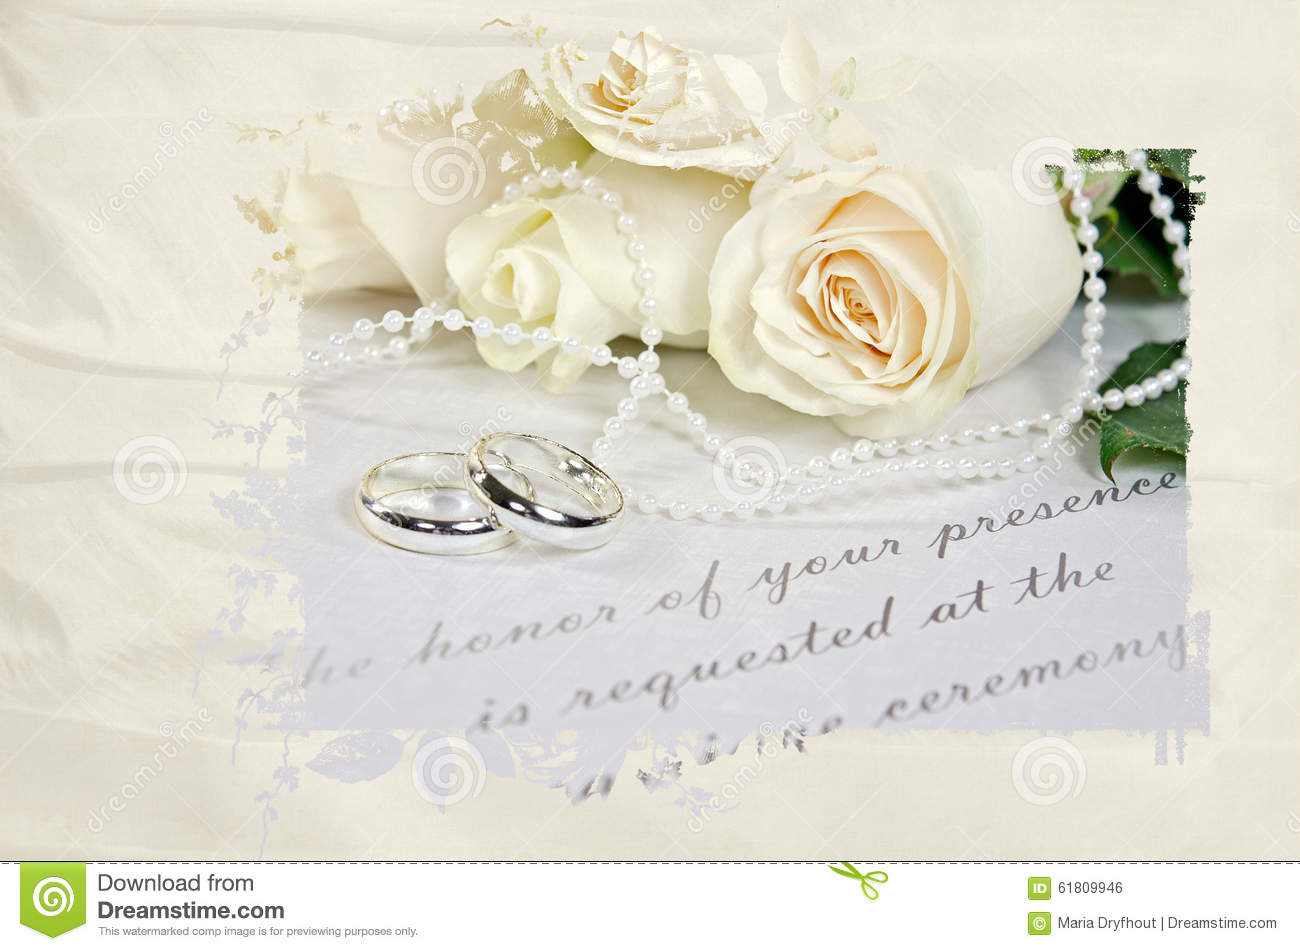 Wedding Rings And White Bridal Roses On Invitation In Satin Mask Frame: Ivory Roses And Wedding Rings At Reisefeber.org